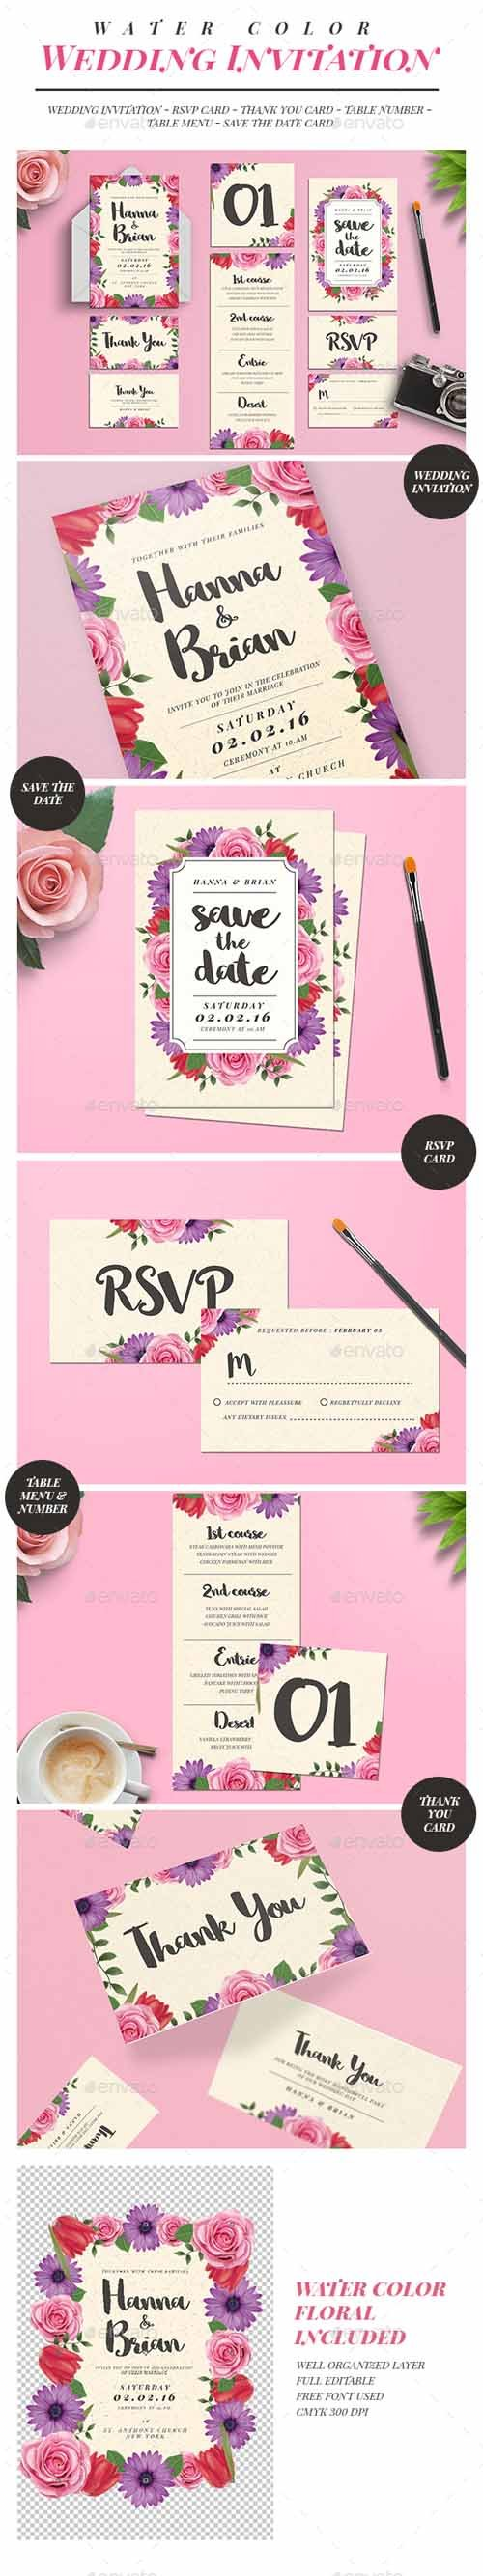 Watercolor Floral Wedding Invitation Suite 16212263